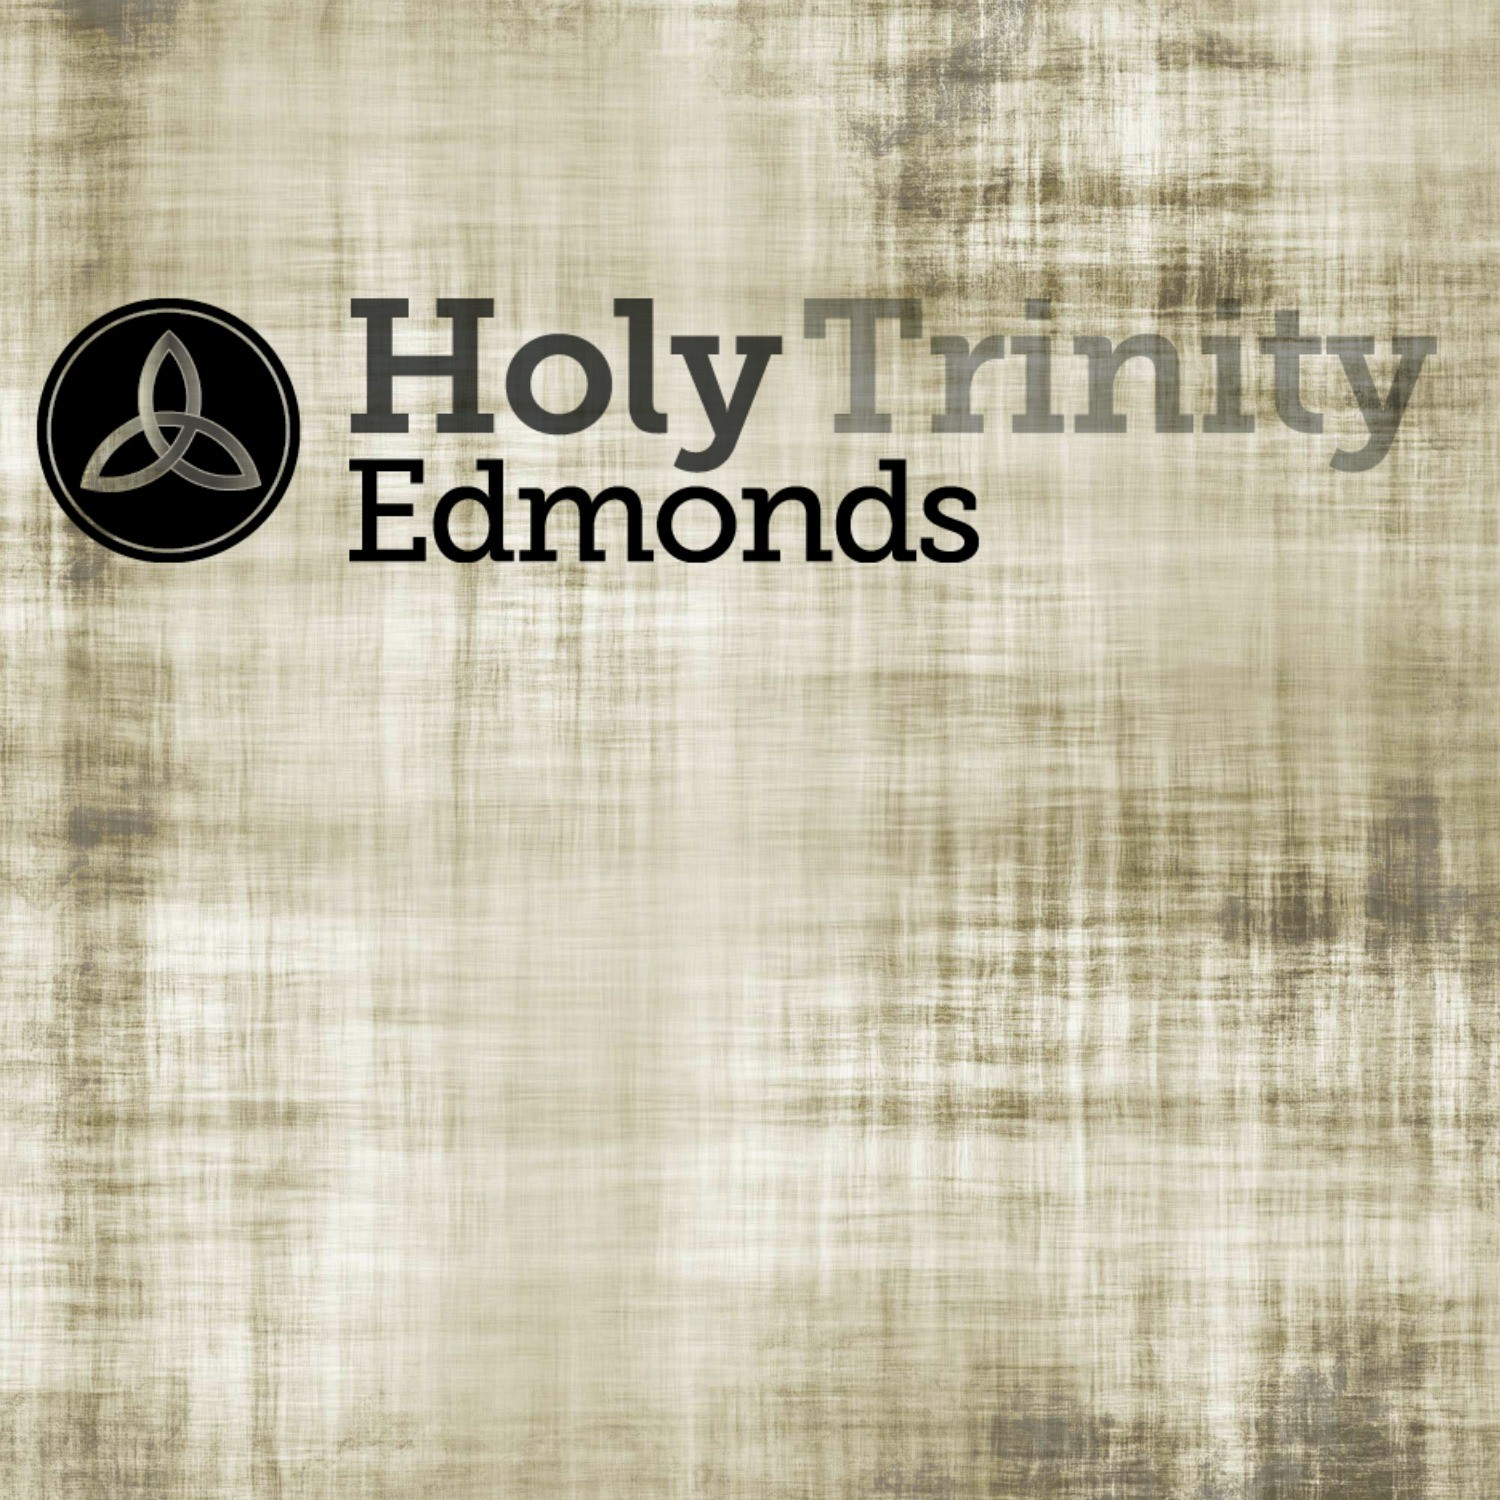 Holy Trinity Edmonds